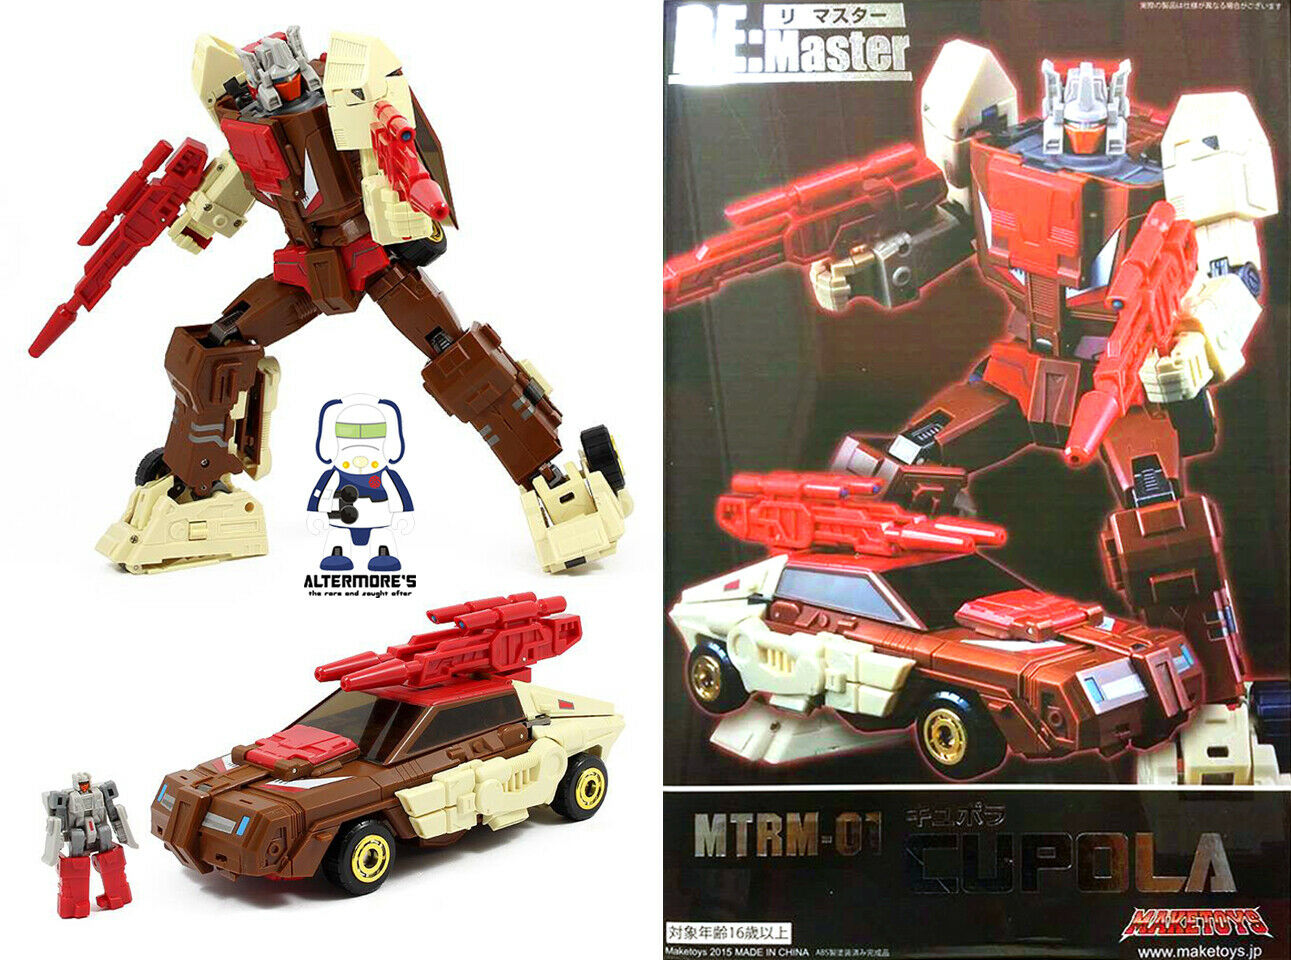 Transformers Masterpiece maketoys mtrm - 01 coupole Également appelé MP chromedome DGSIM